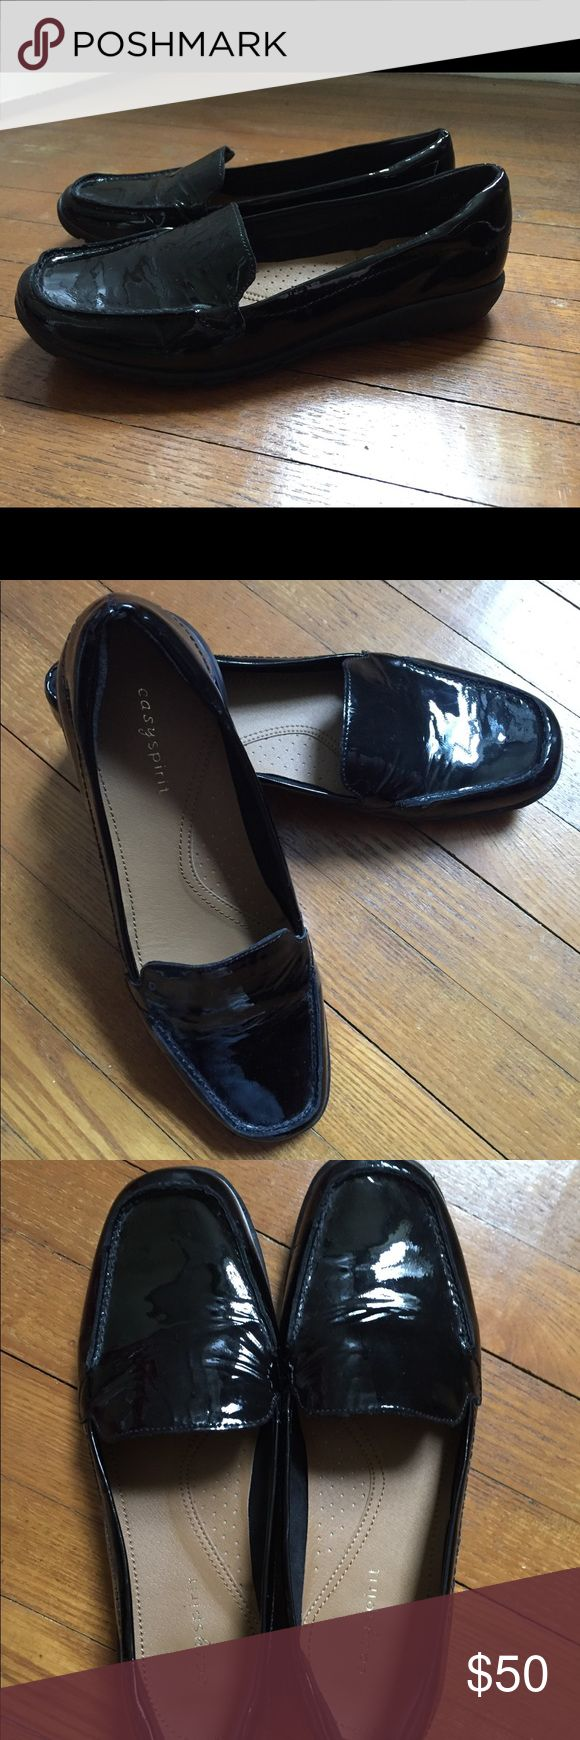 Patent Easy Spirit 7.5 flat loader slip on Black Patent Easy Spirit loafer, slip on in size 7.5 in excellent condition! Easy Spirit Shoes Flats & Loafers